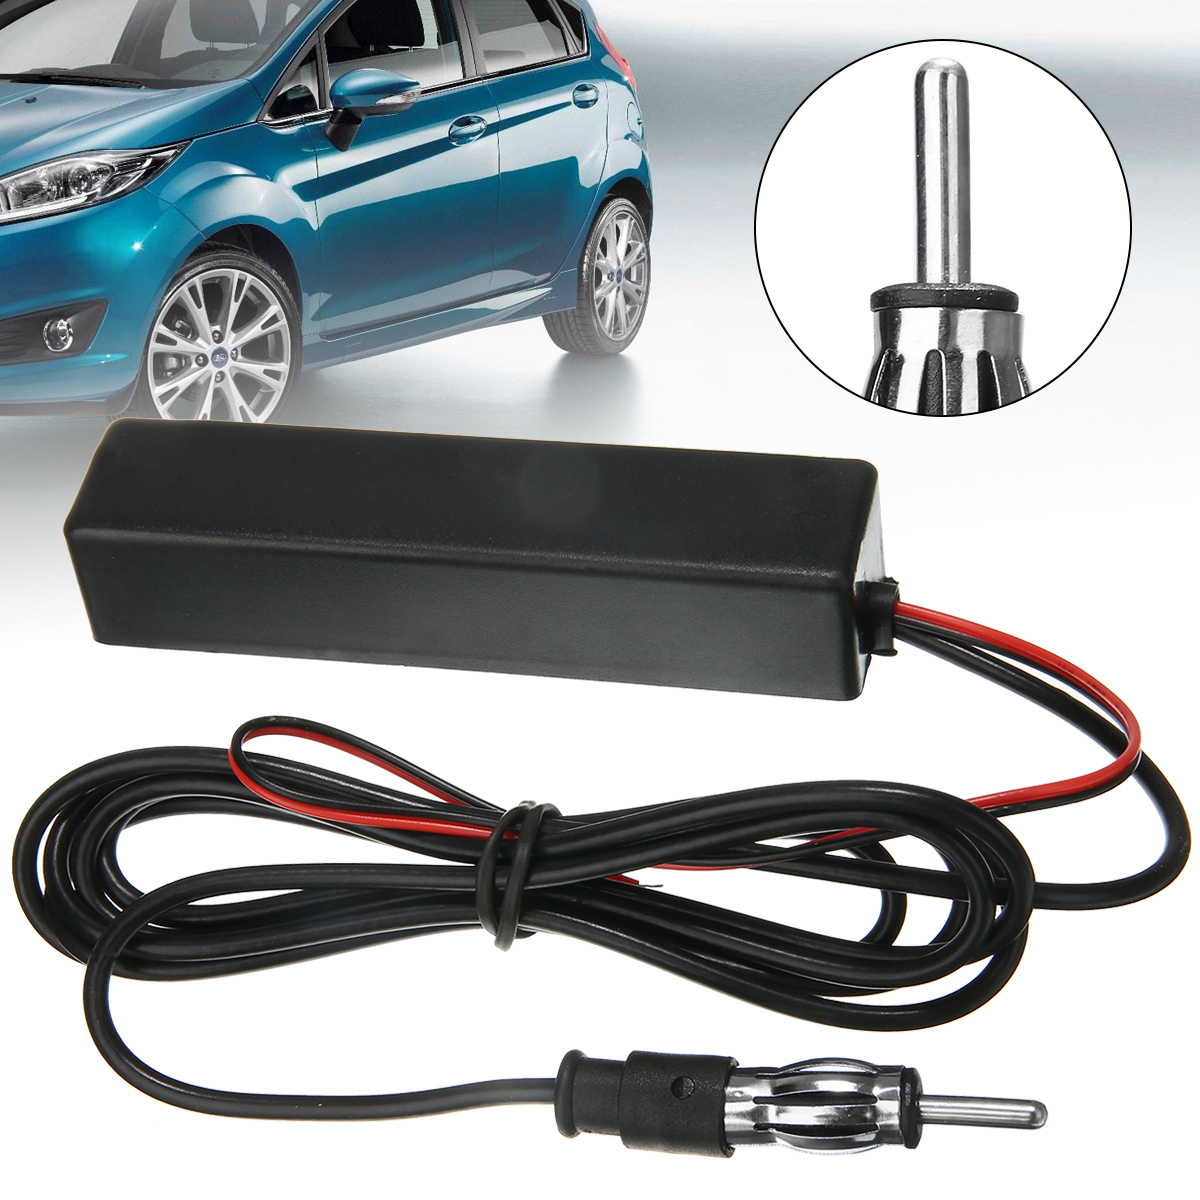 1pcs 15m Car Aerial Electronic Stereo AM FM Radio Hidden Amplified Antenna Aerial 12V Universal